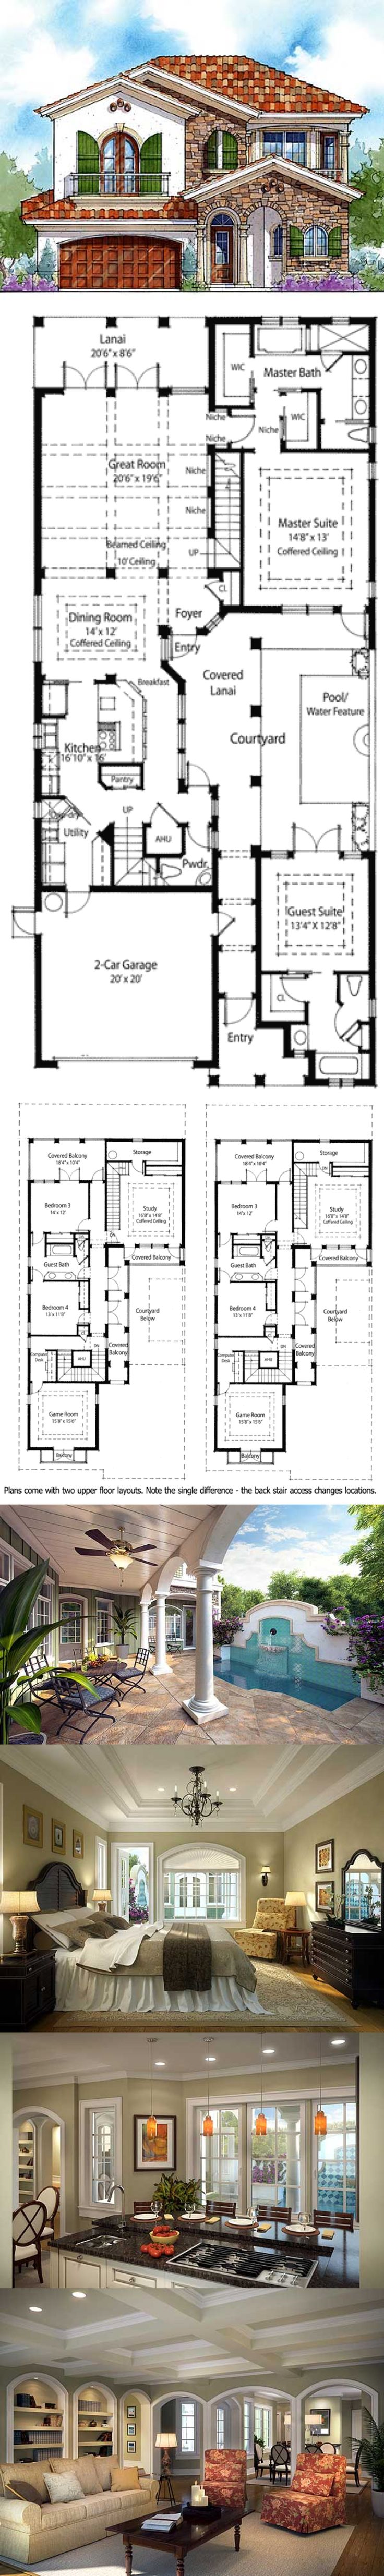 204 best house plans and exteriors images on pinterest house